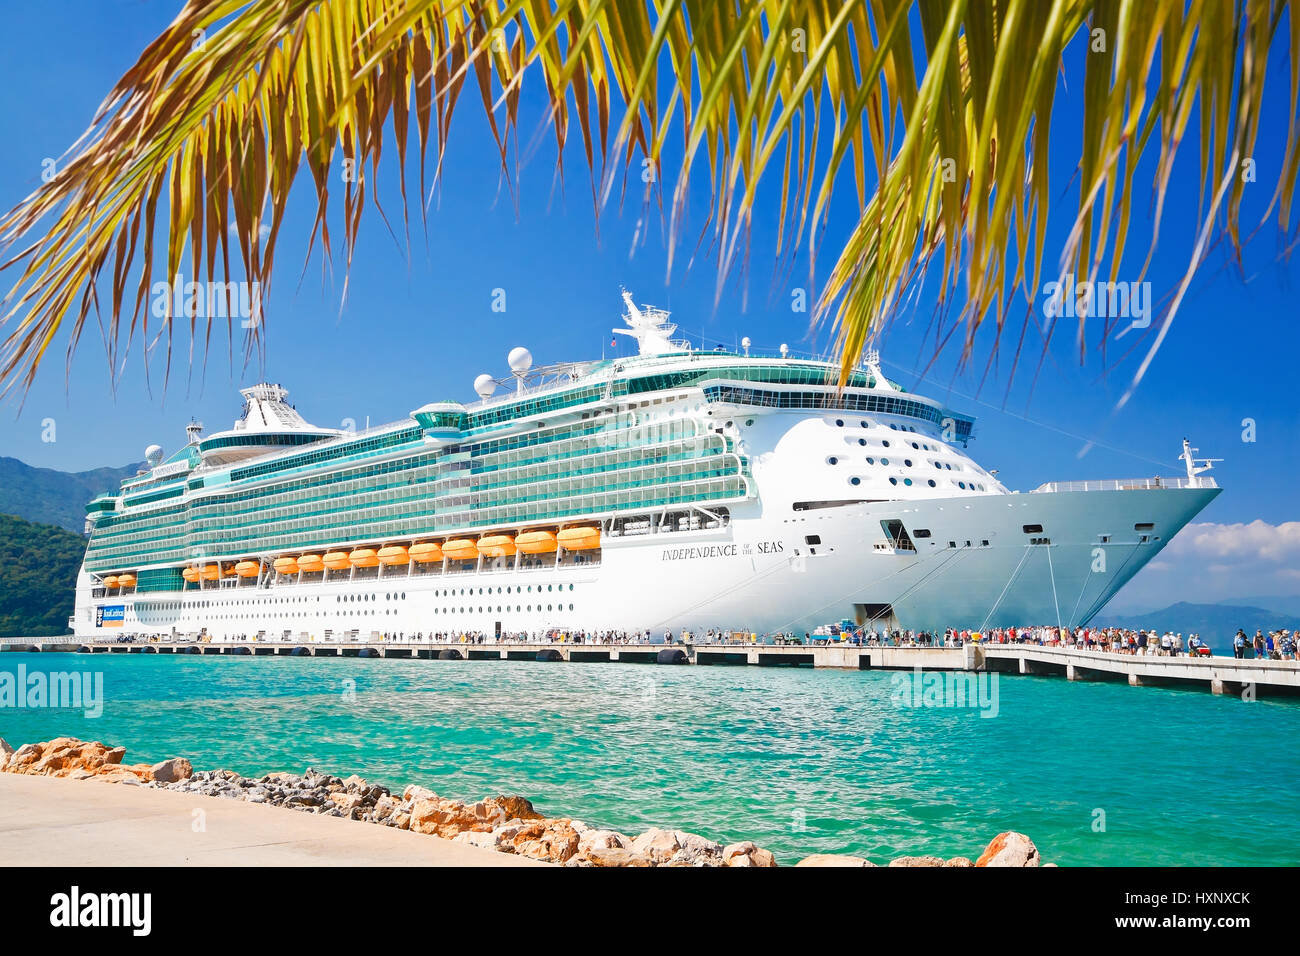 Royal Caribbean cruise ship Independence of the Seas docked at the